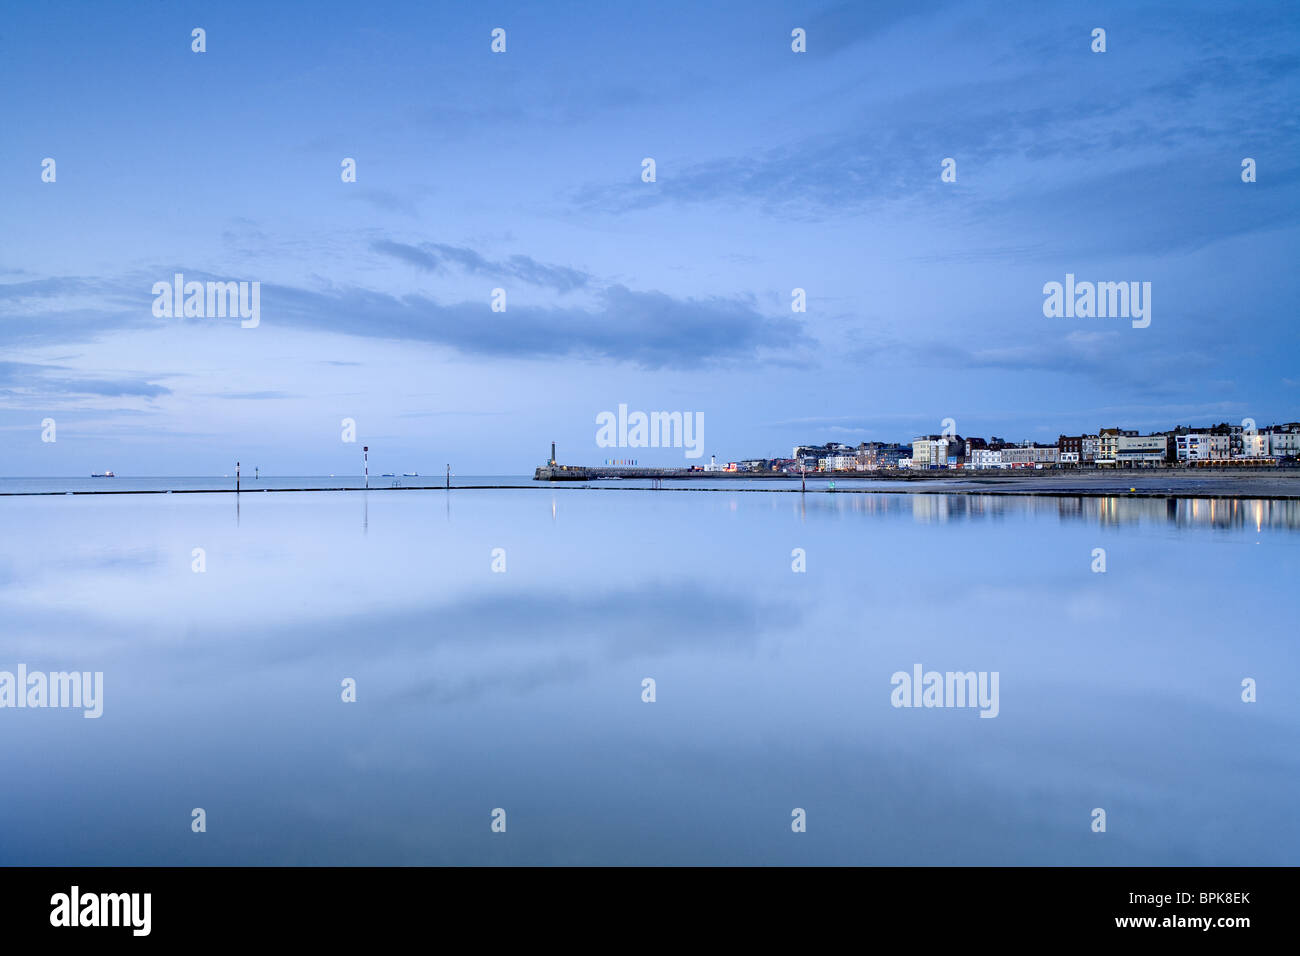 Seaside town of Margate, Kent, England, Great Britain, Europe Stock Photo